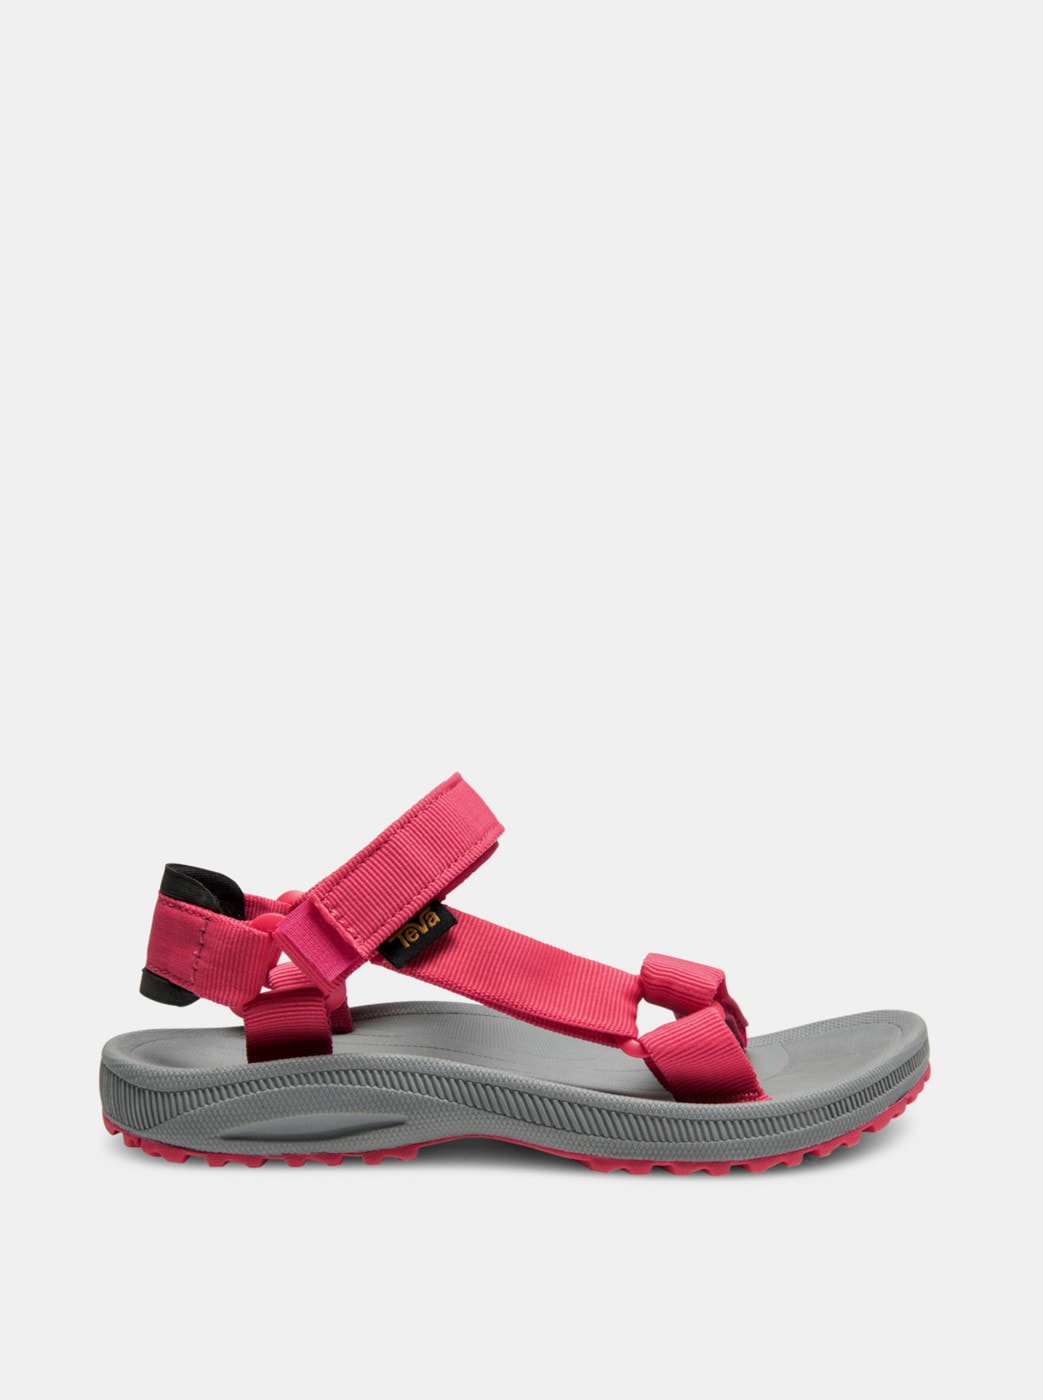 Teva Winsted Solid Pink Women's Sandals